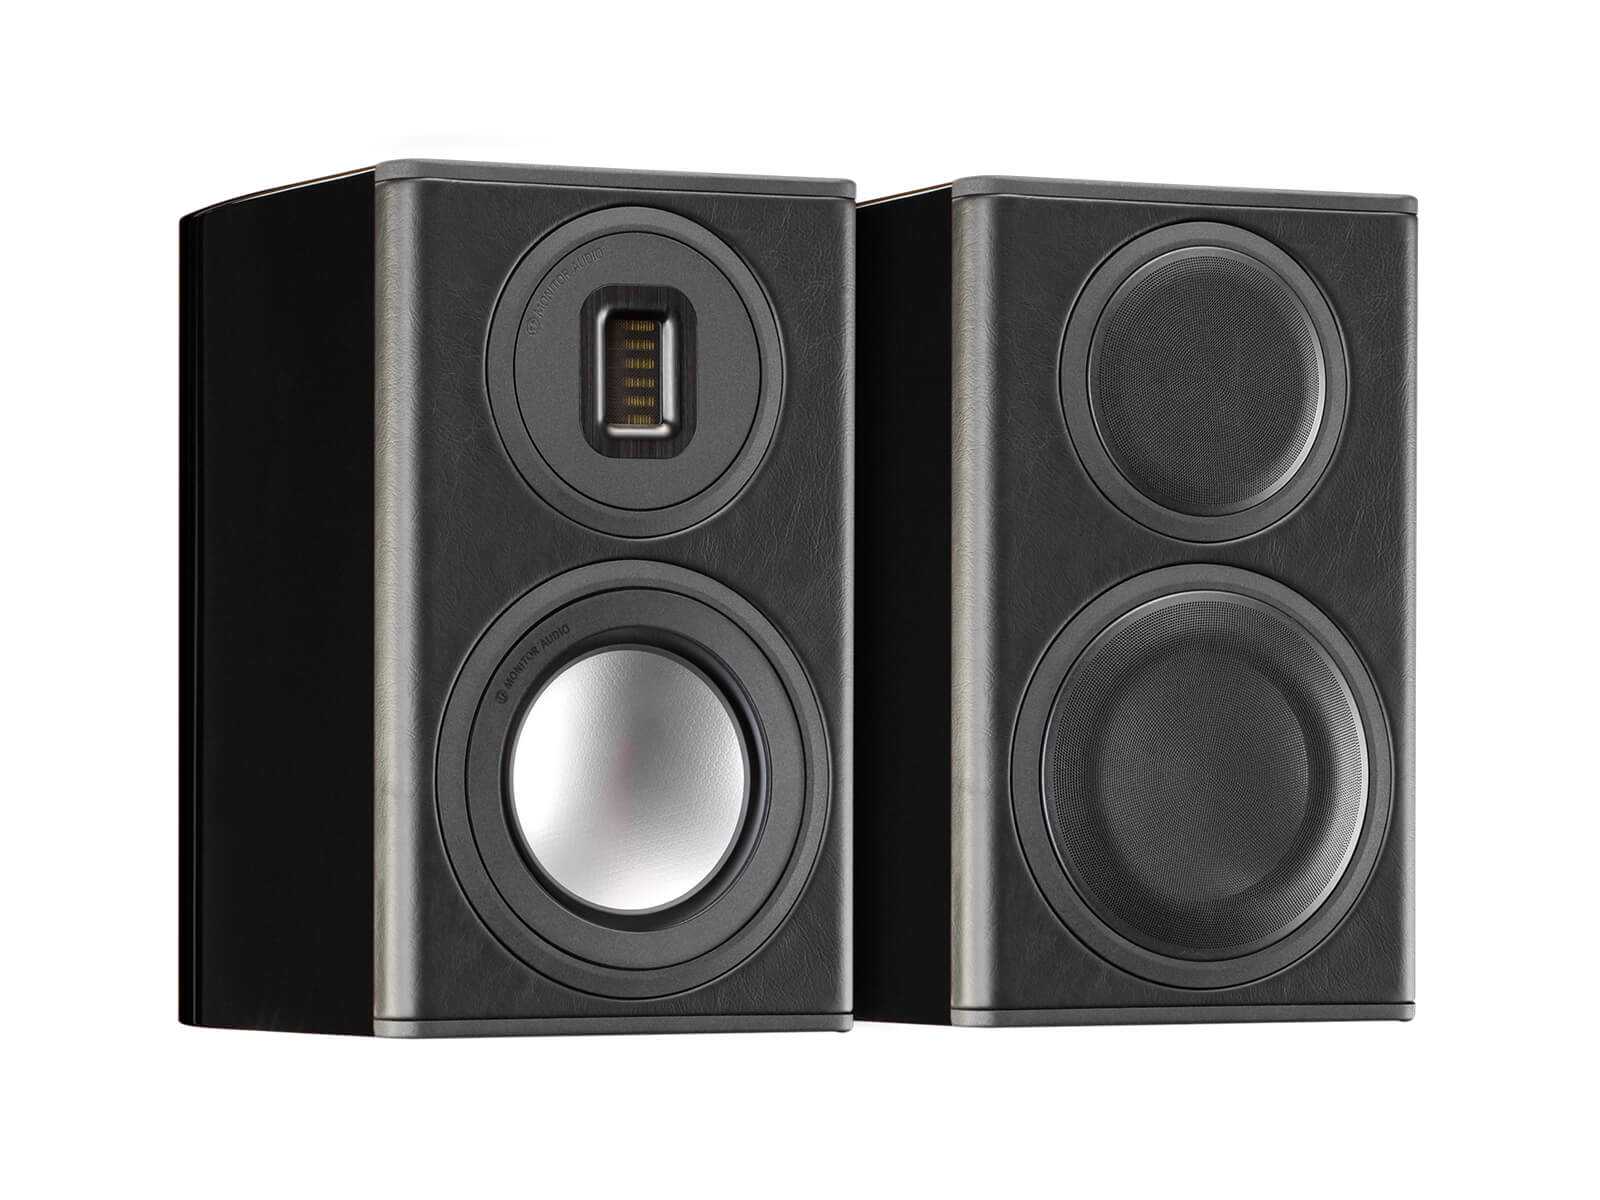 Platinum PL100 II, bookshelf speakers, featuring a grille and an ebony real wood veneer finish.